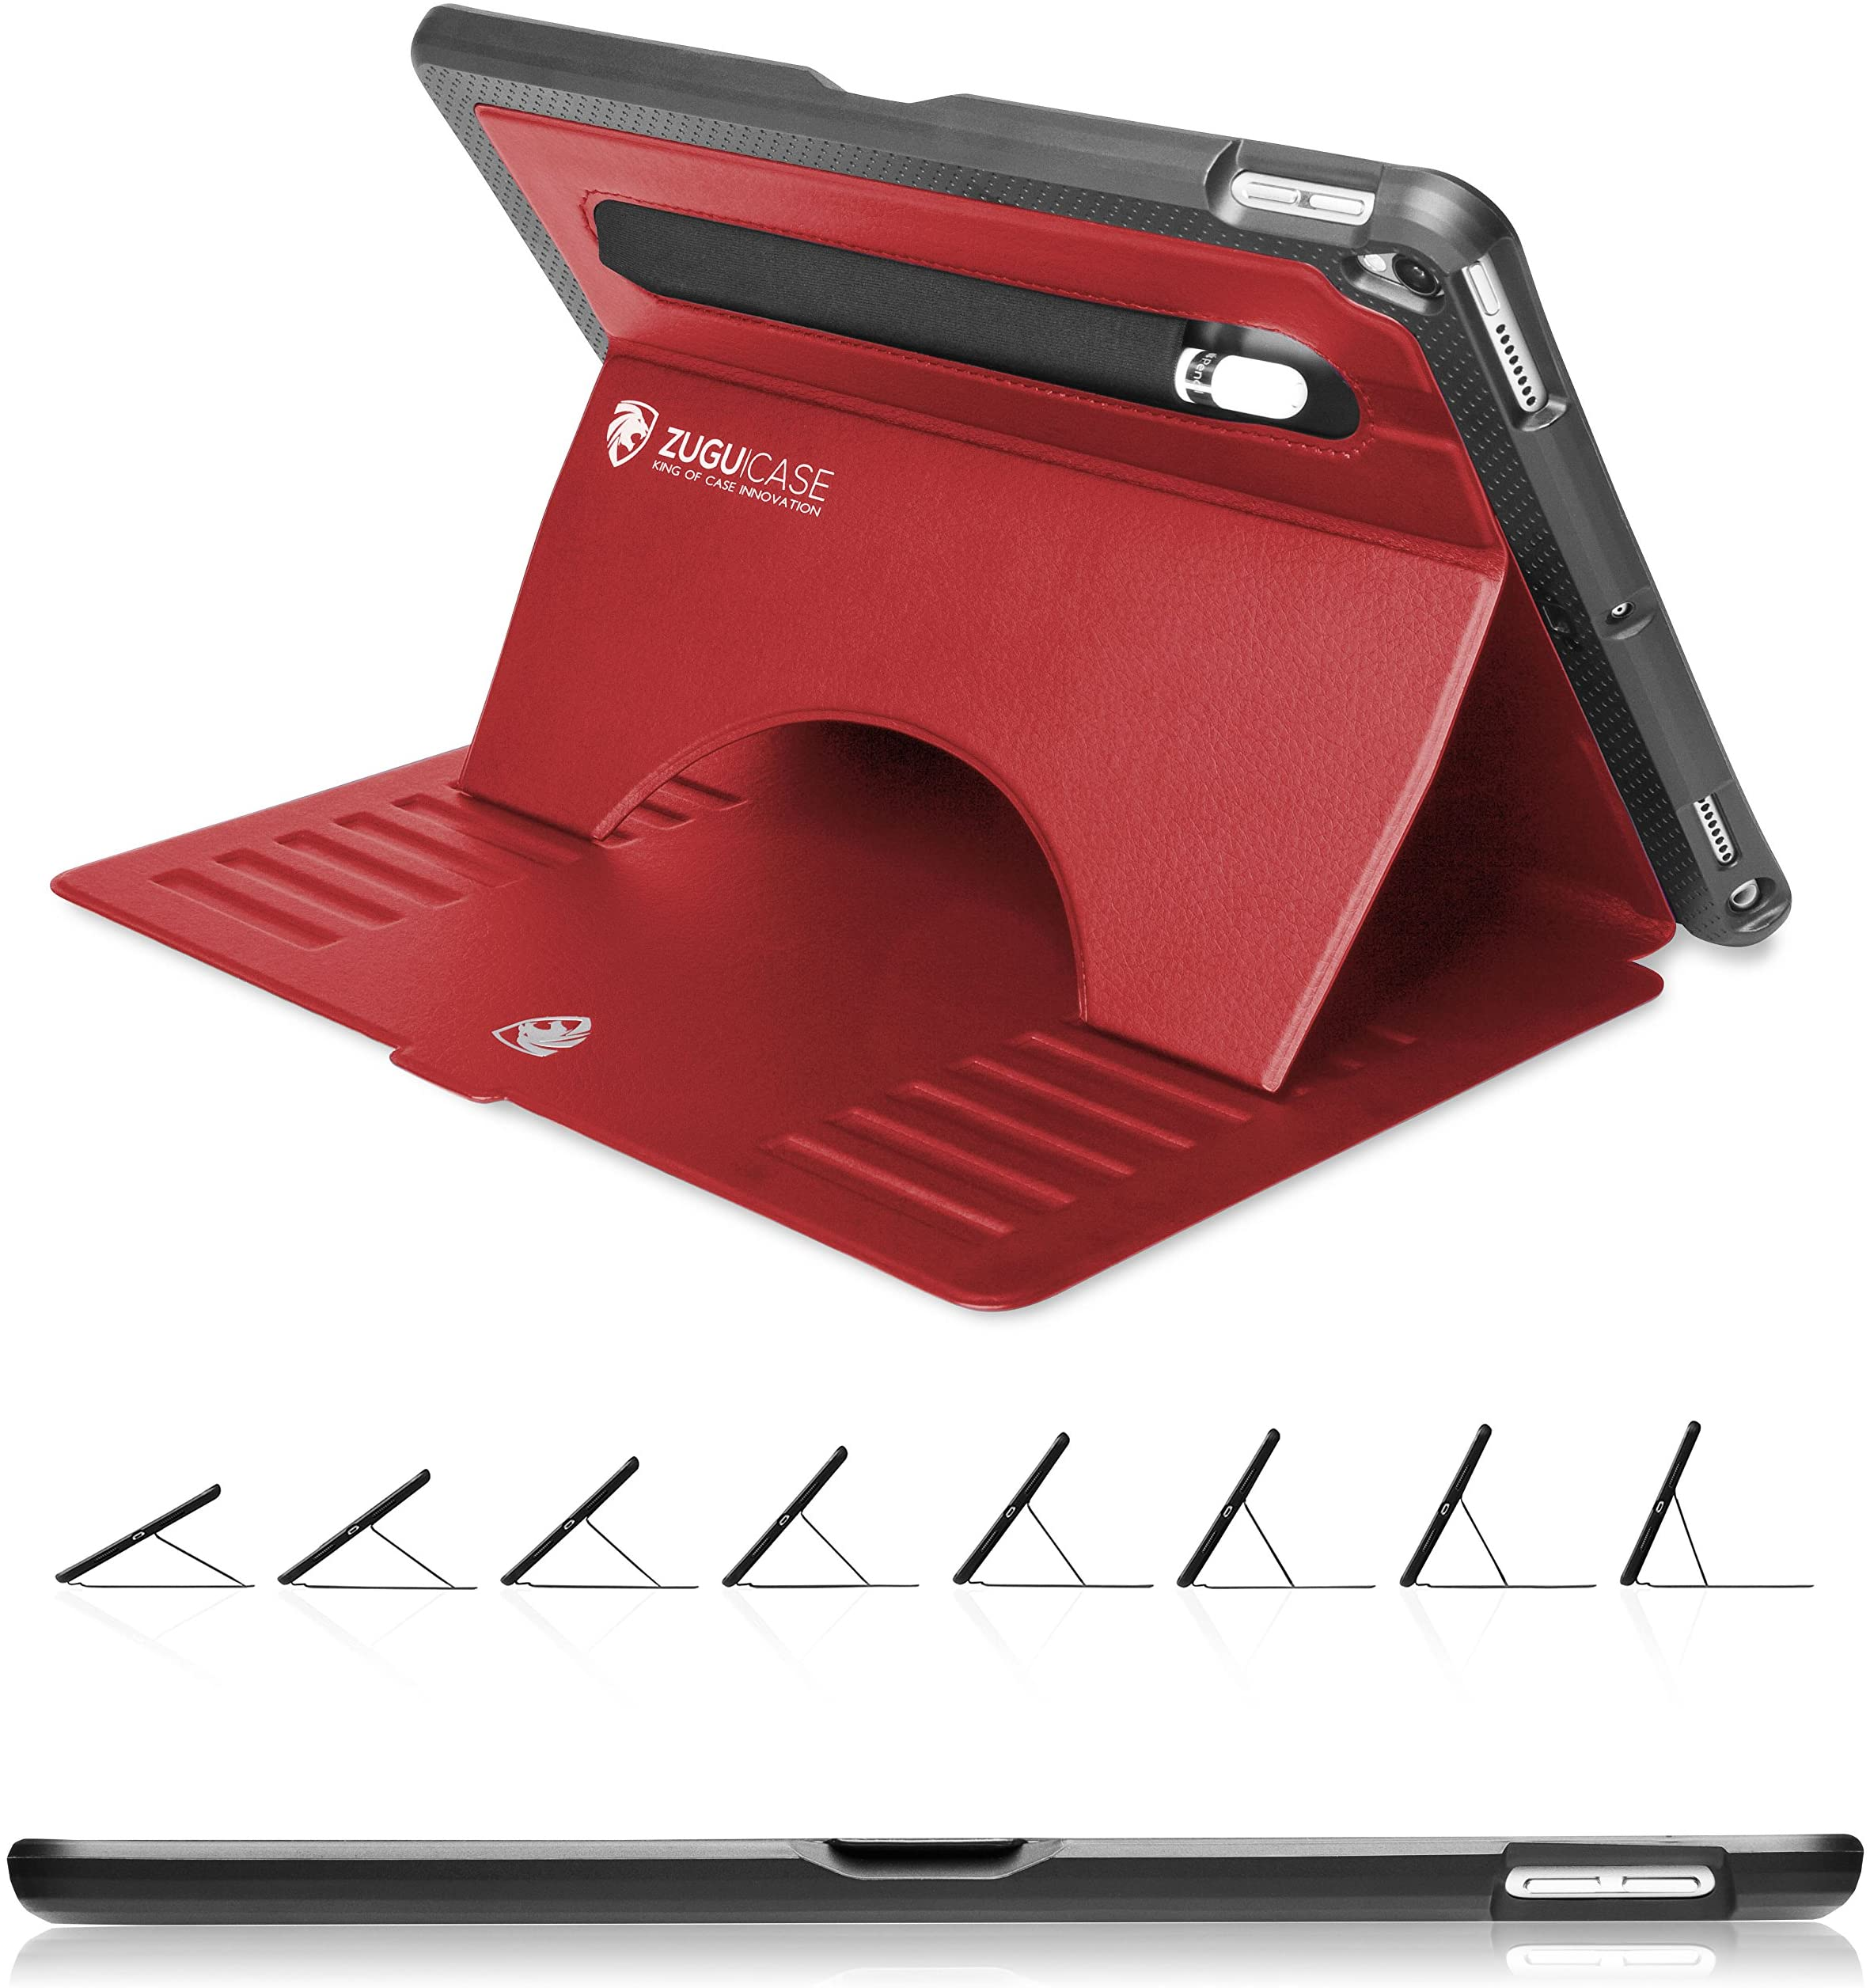 ZUGU CASE - 2019 iPad Air 3 10.5/2017 iPad Pro 10.5 inch Case Prodigy X - Very Protective But Thin + Convenient Magnetic Stand + Sleep/Wake Cover (Red)